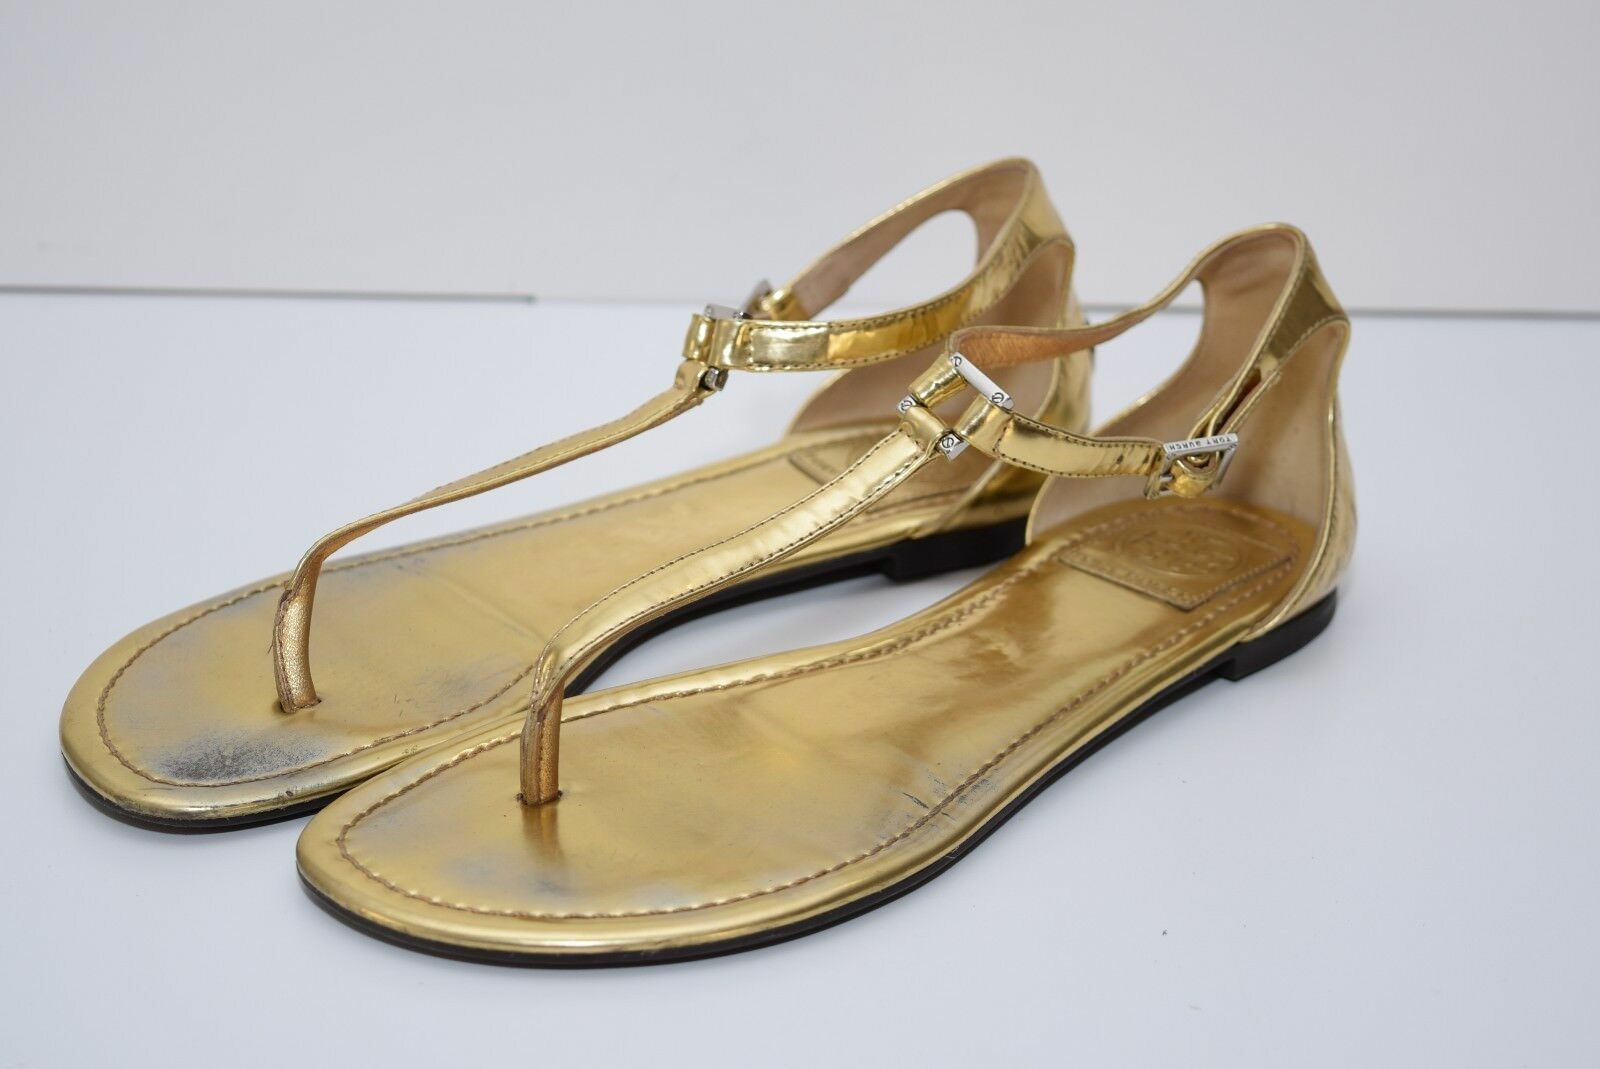 TORY BURCH Donna Gold Adjustable Ankle Strap Pelle Thong Sandals sz 10M